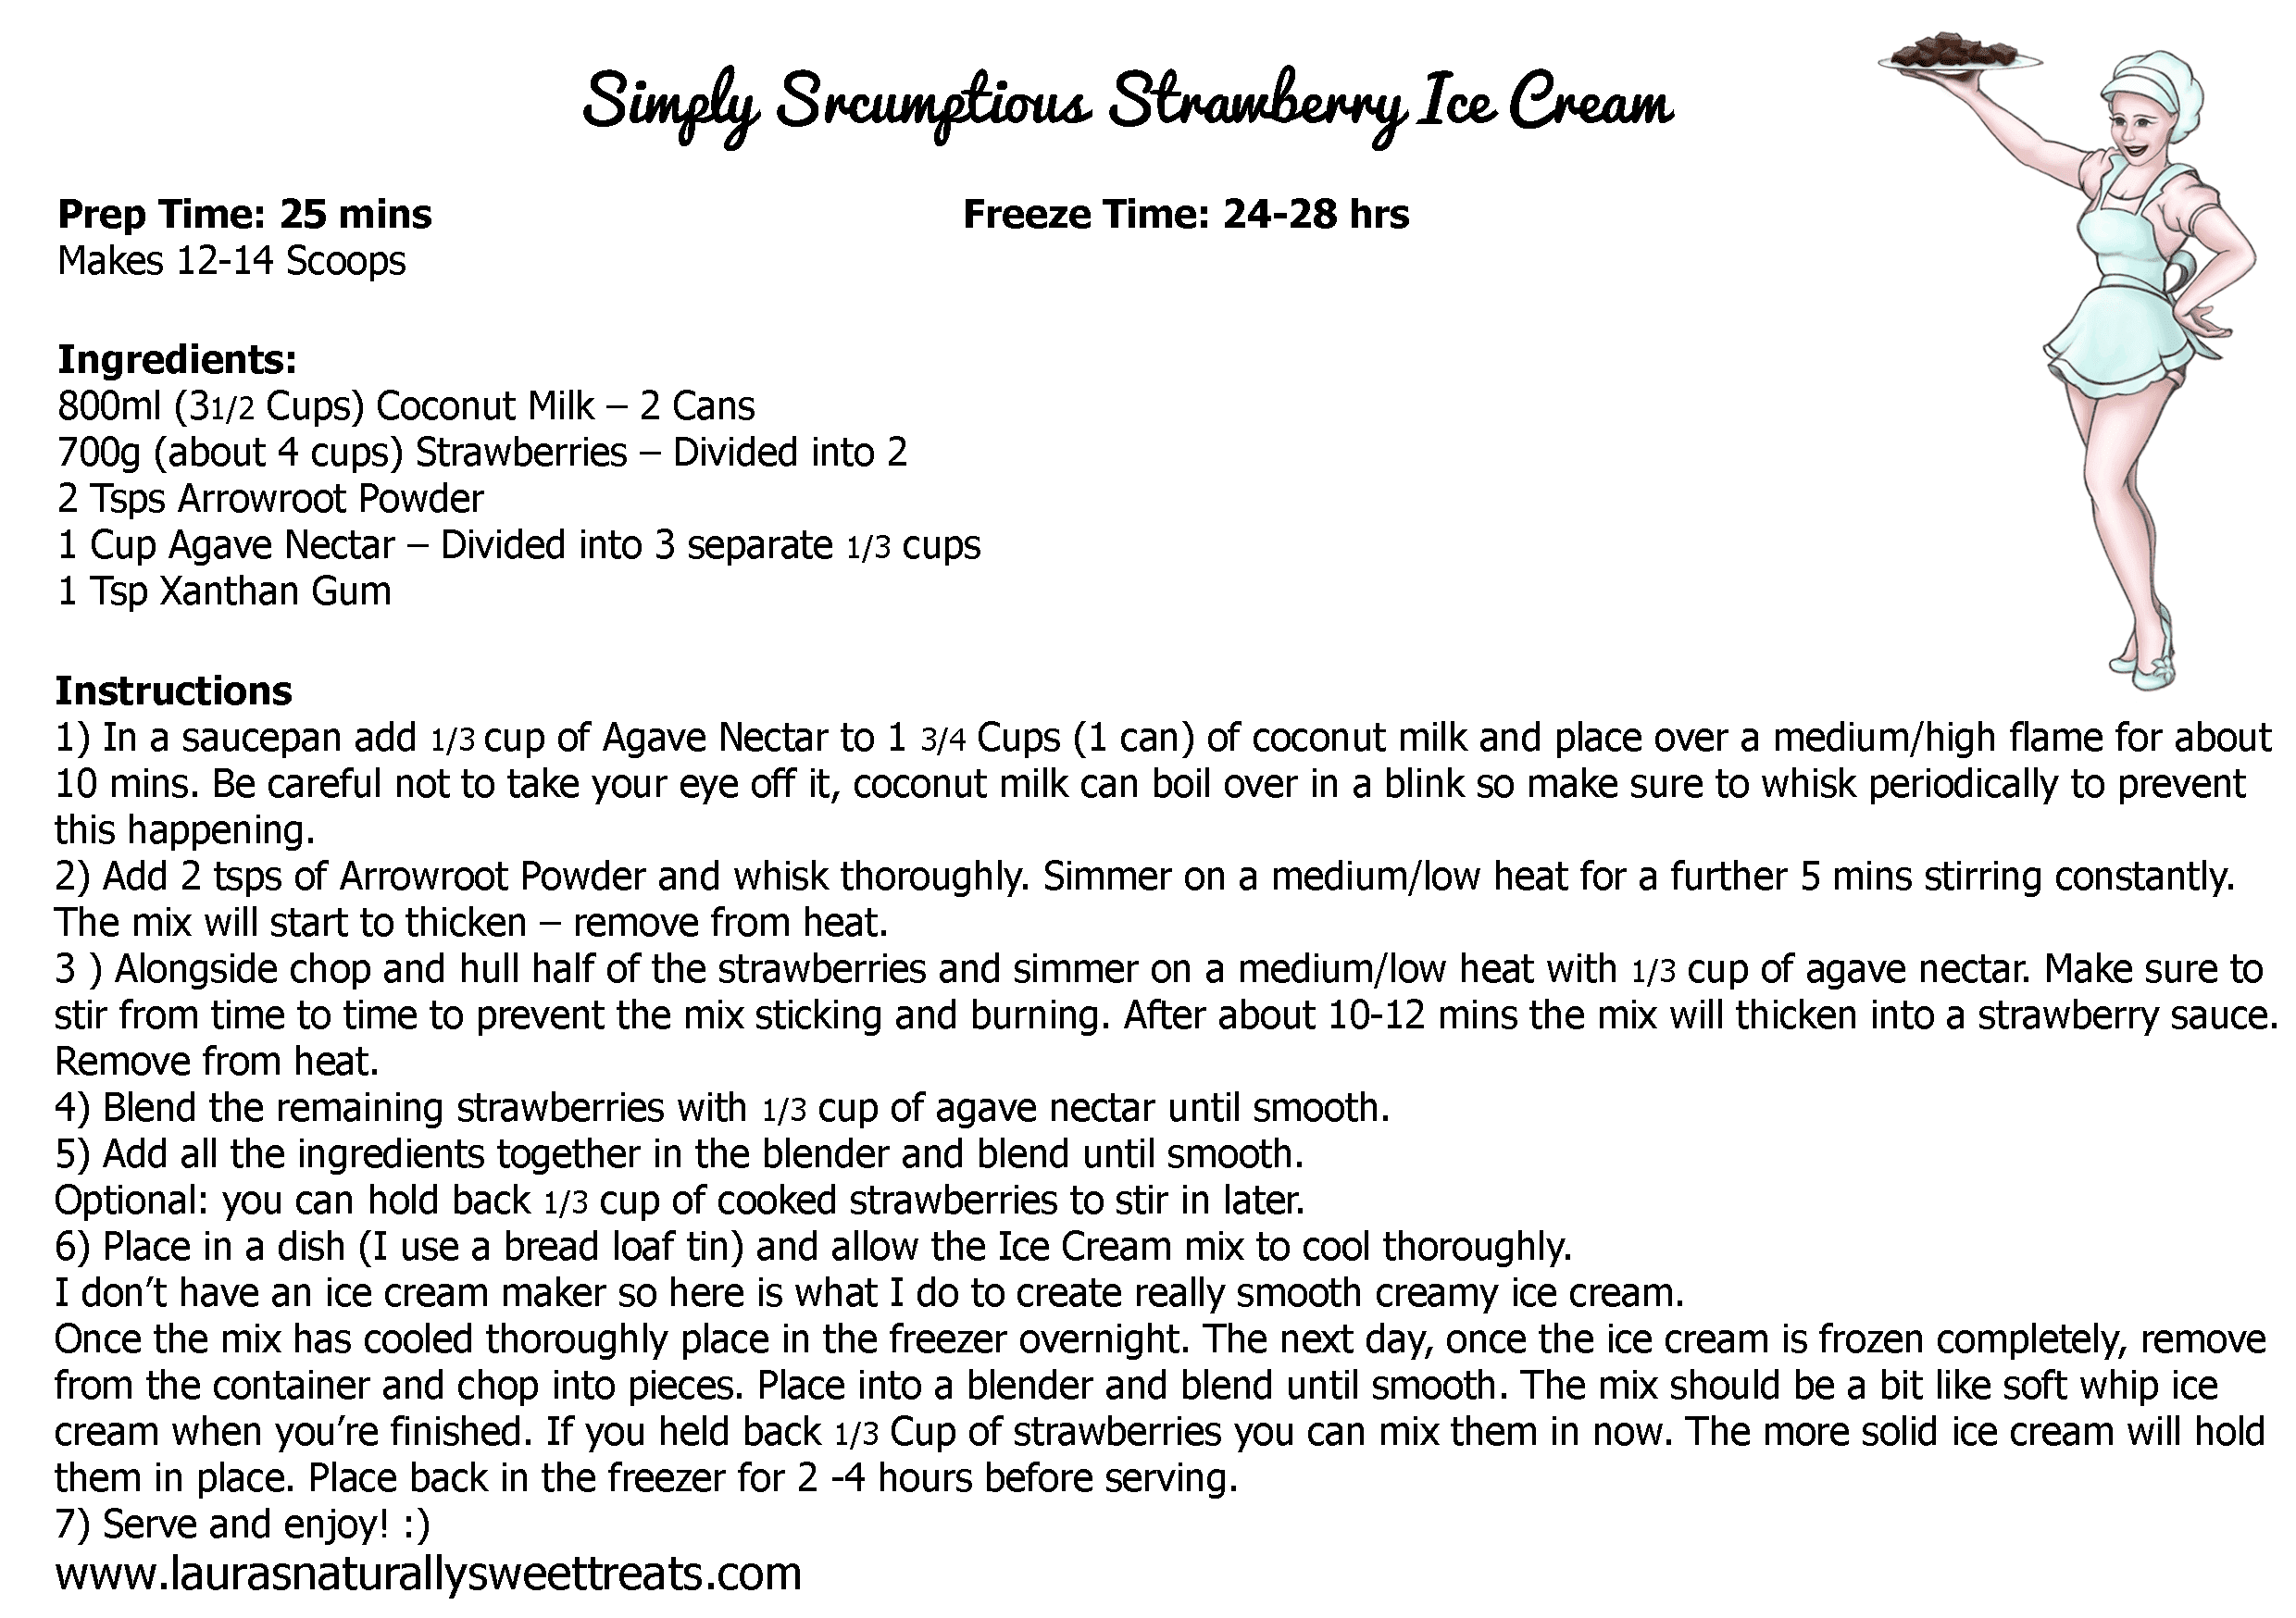 simply-scrumptious-strawberry-ice-cream-recipe